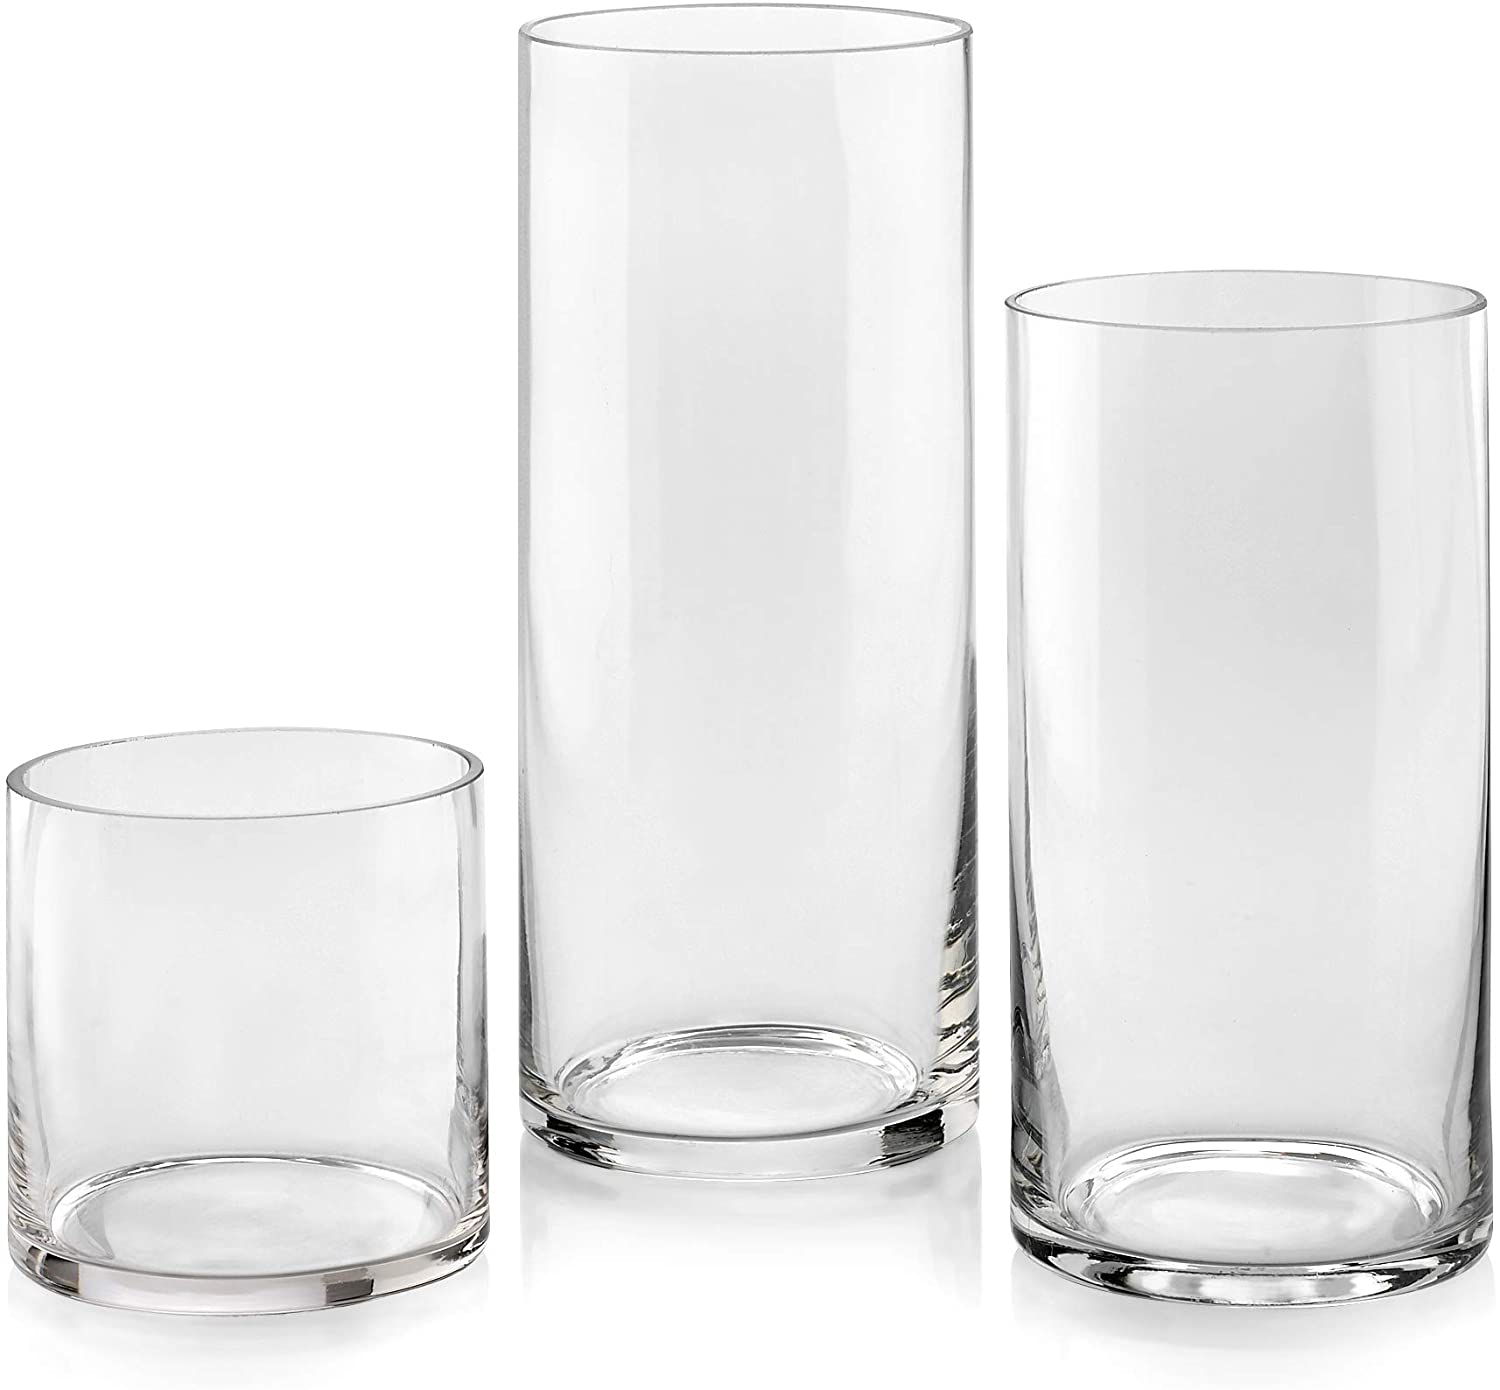 Set of 3 Glass Cylinder Vases Popular product 5 Multi-us 8 10 – Tall Inch 25% OFF